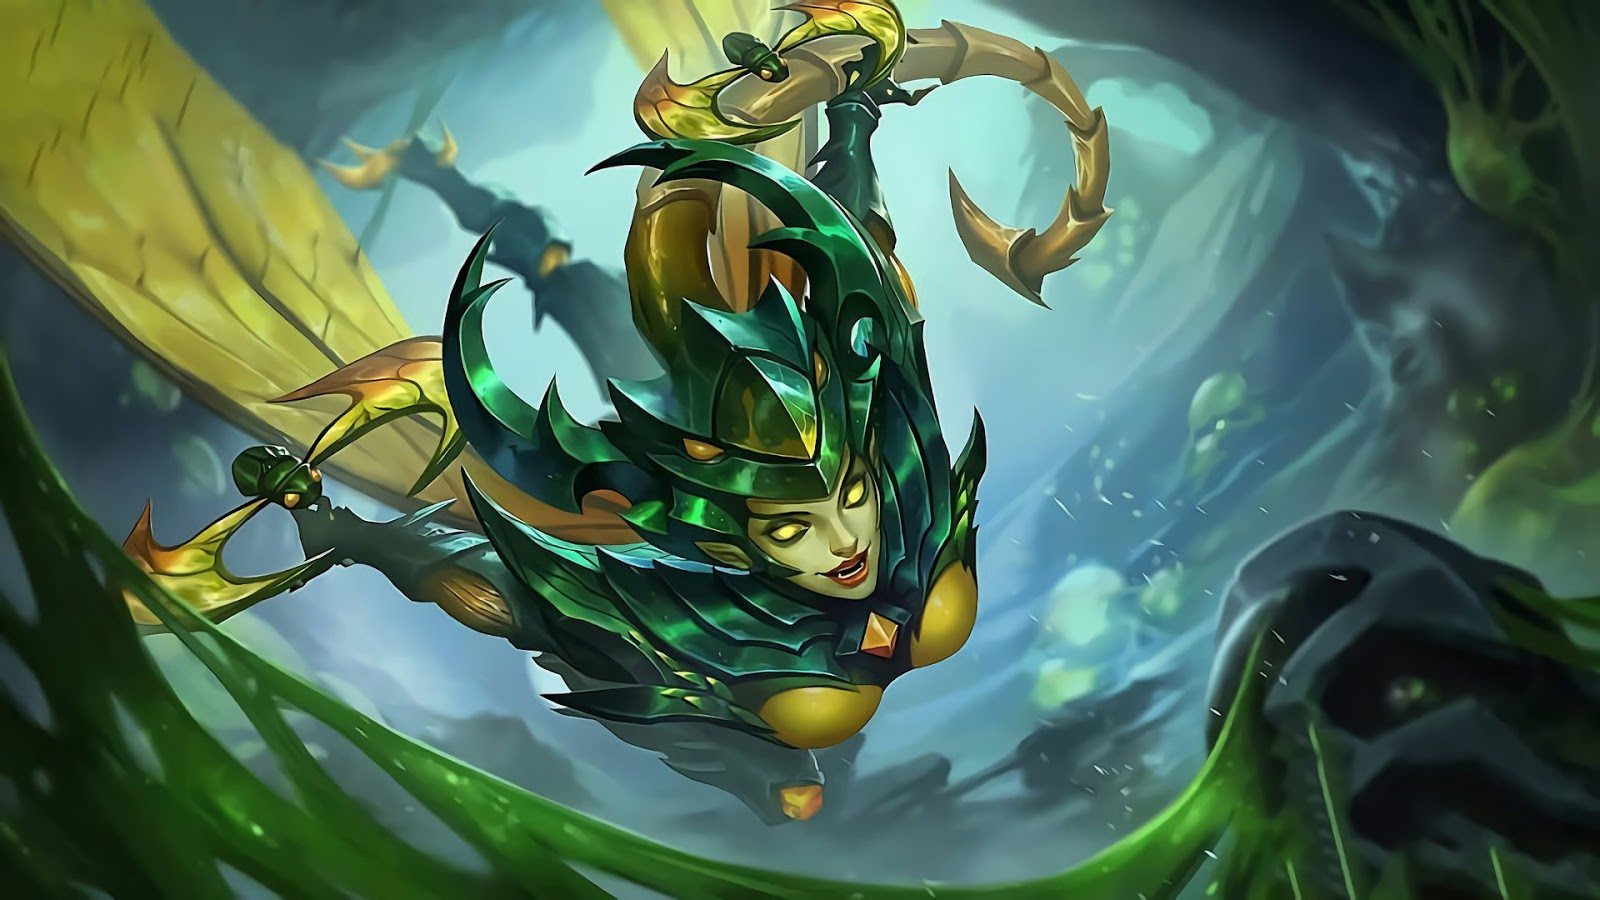 Wallpaper Karrie Bladed Mantis Skin Mobile Legends HD for PC